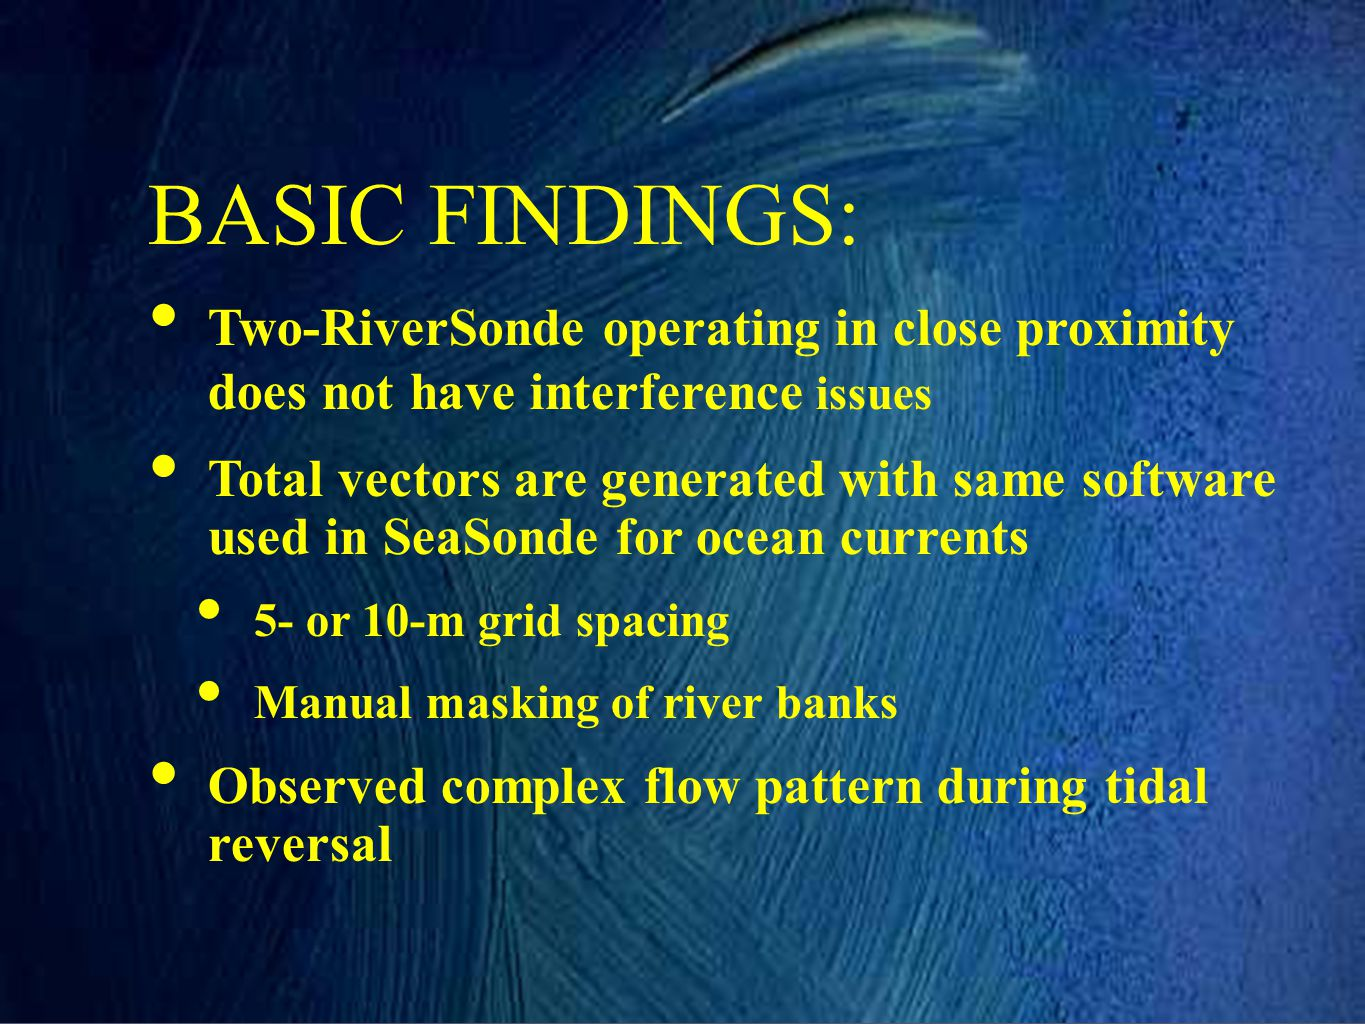 BASIC FINDINGS: Two-RiverSonde operating in close proximity does not have interference issues.